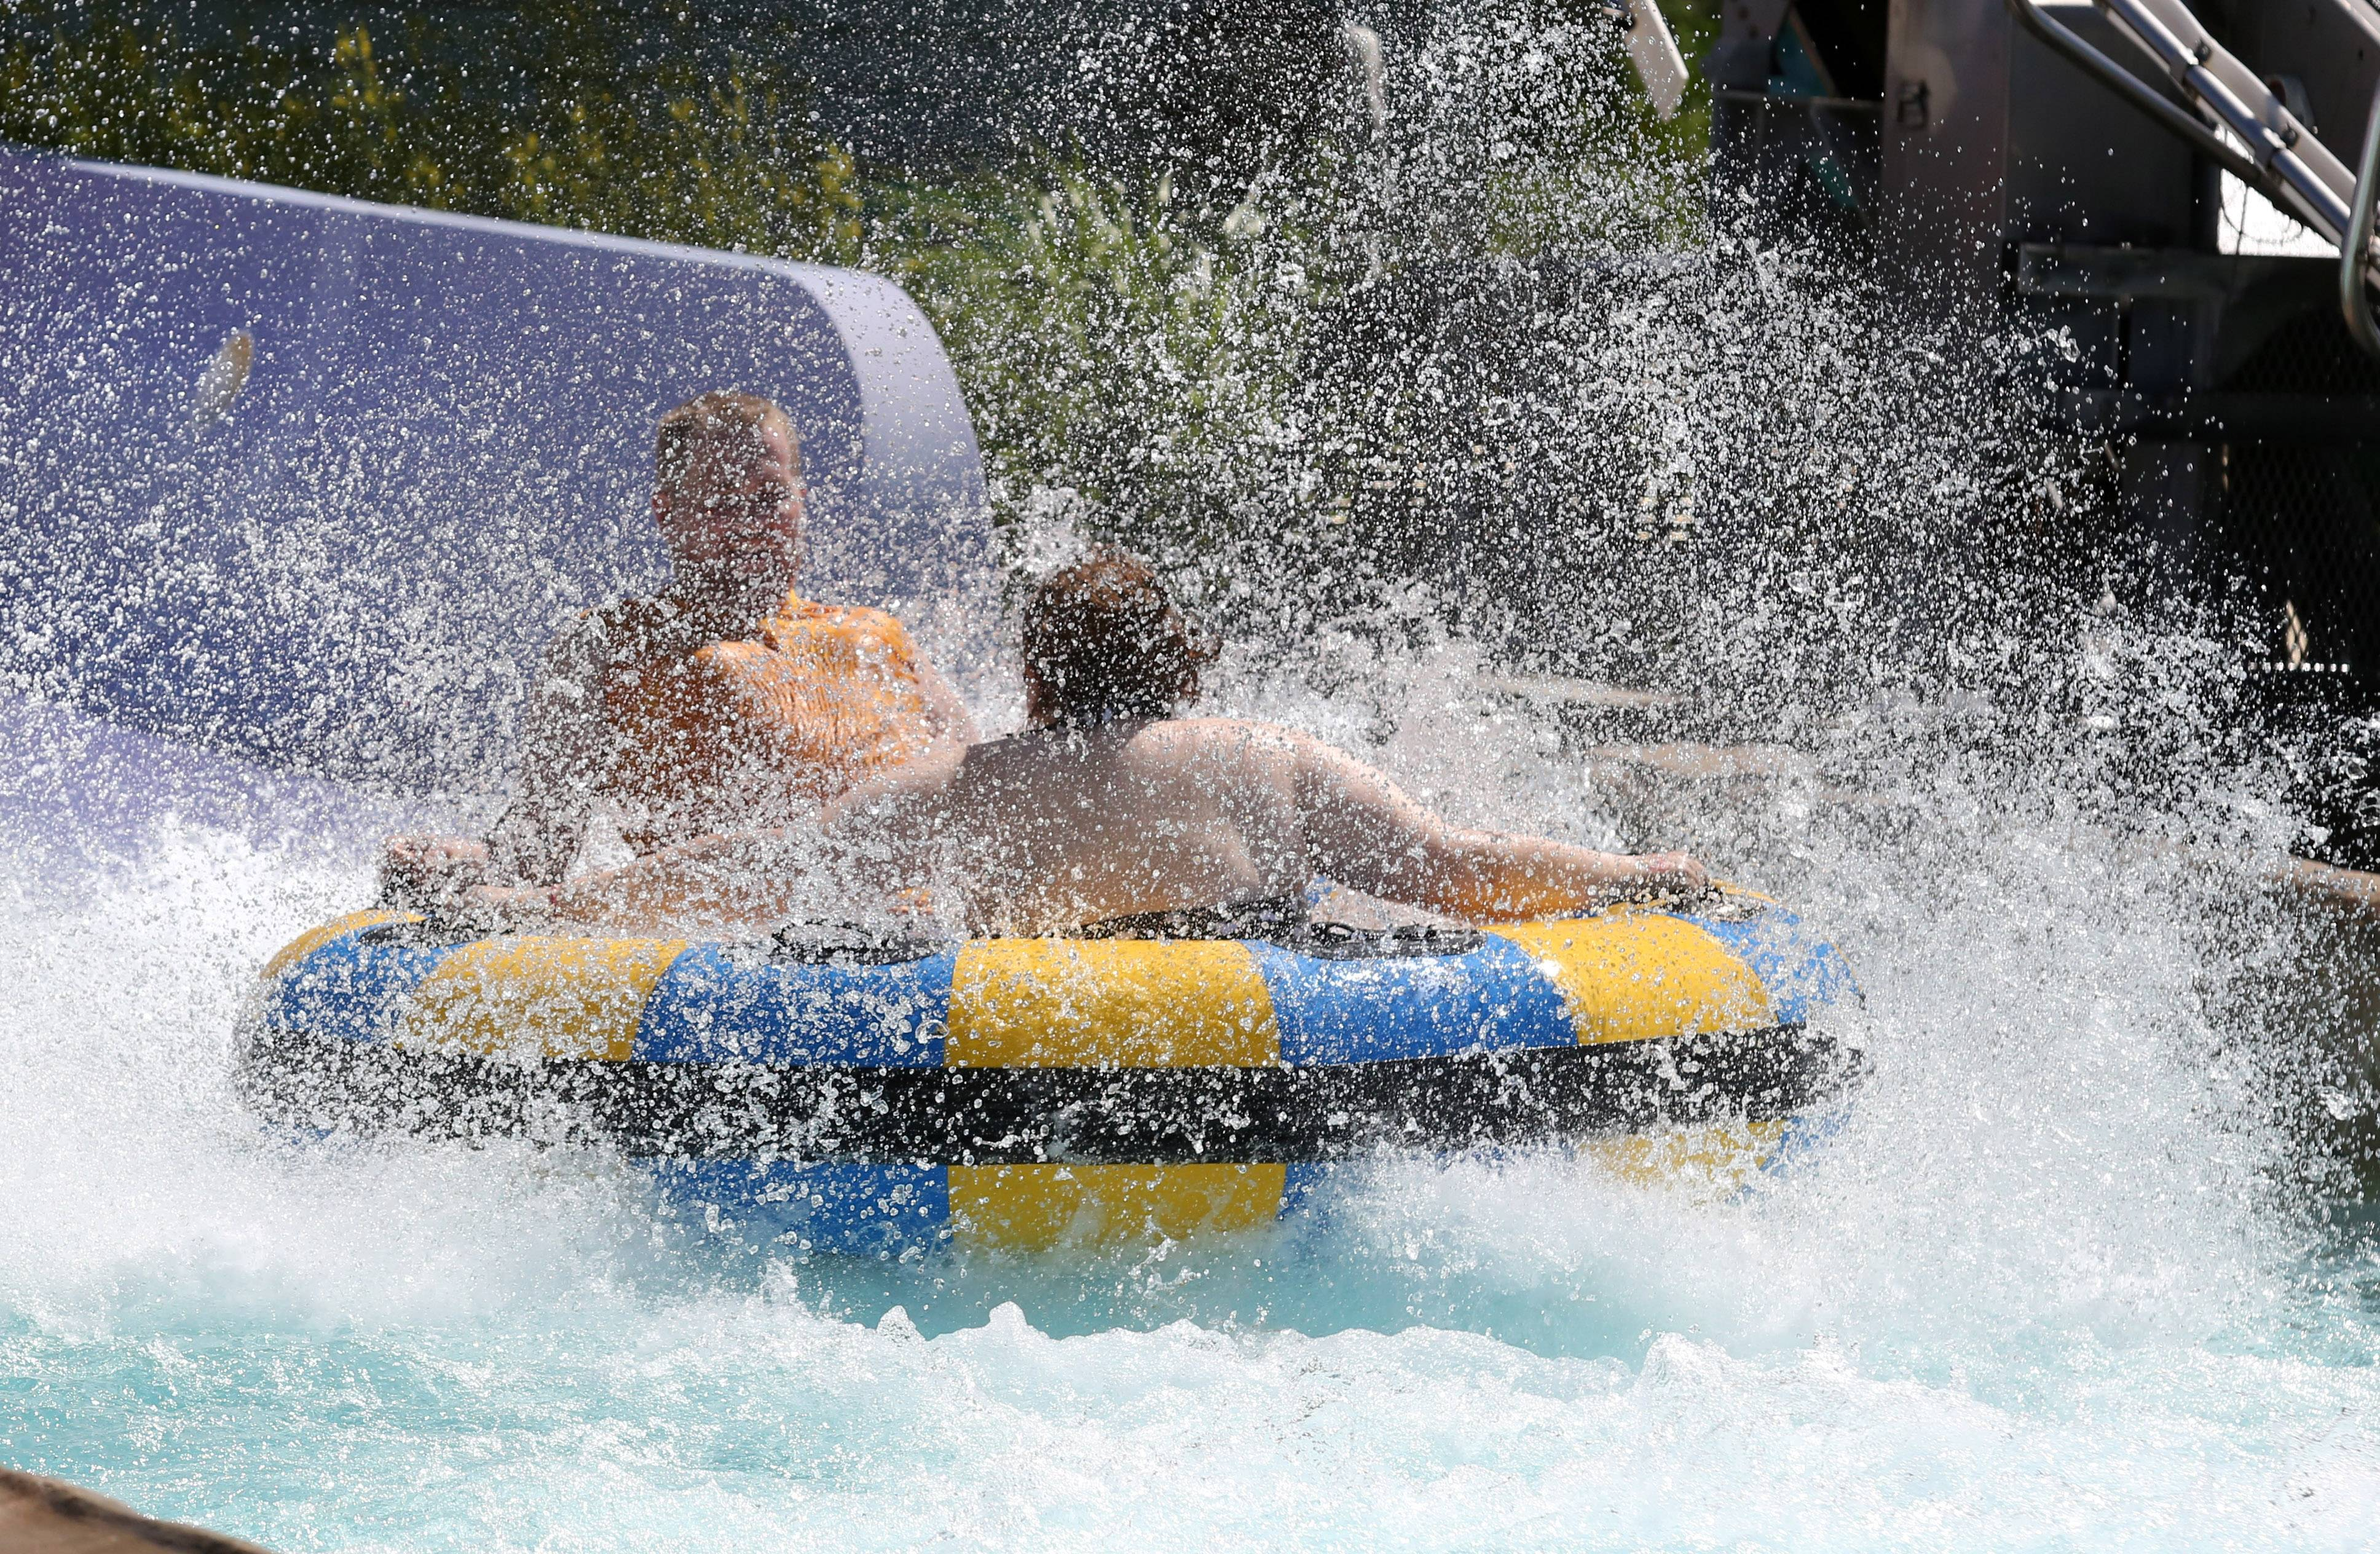 Tyler Herling of Evergreen Park and Dayna Hann of Orland Park splash down at the end of the Bahama Mama extreme rafting ride at Great America's Hurricane Harbor in Gurnee.